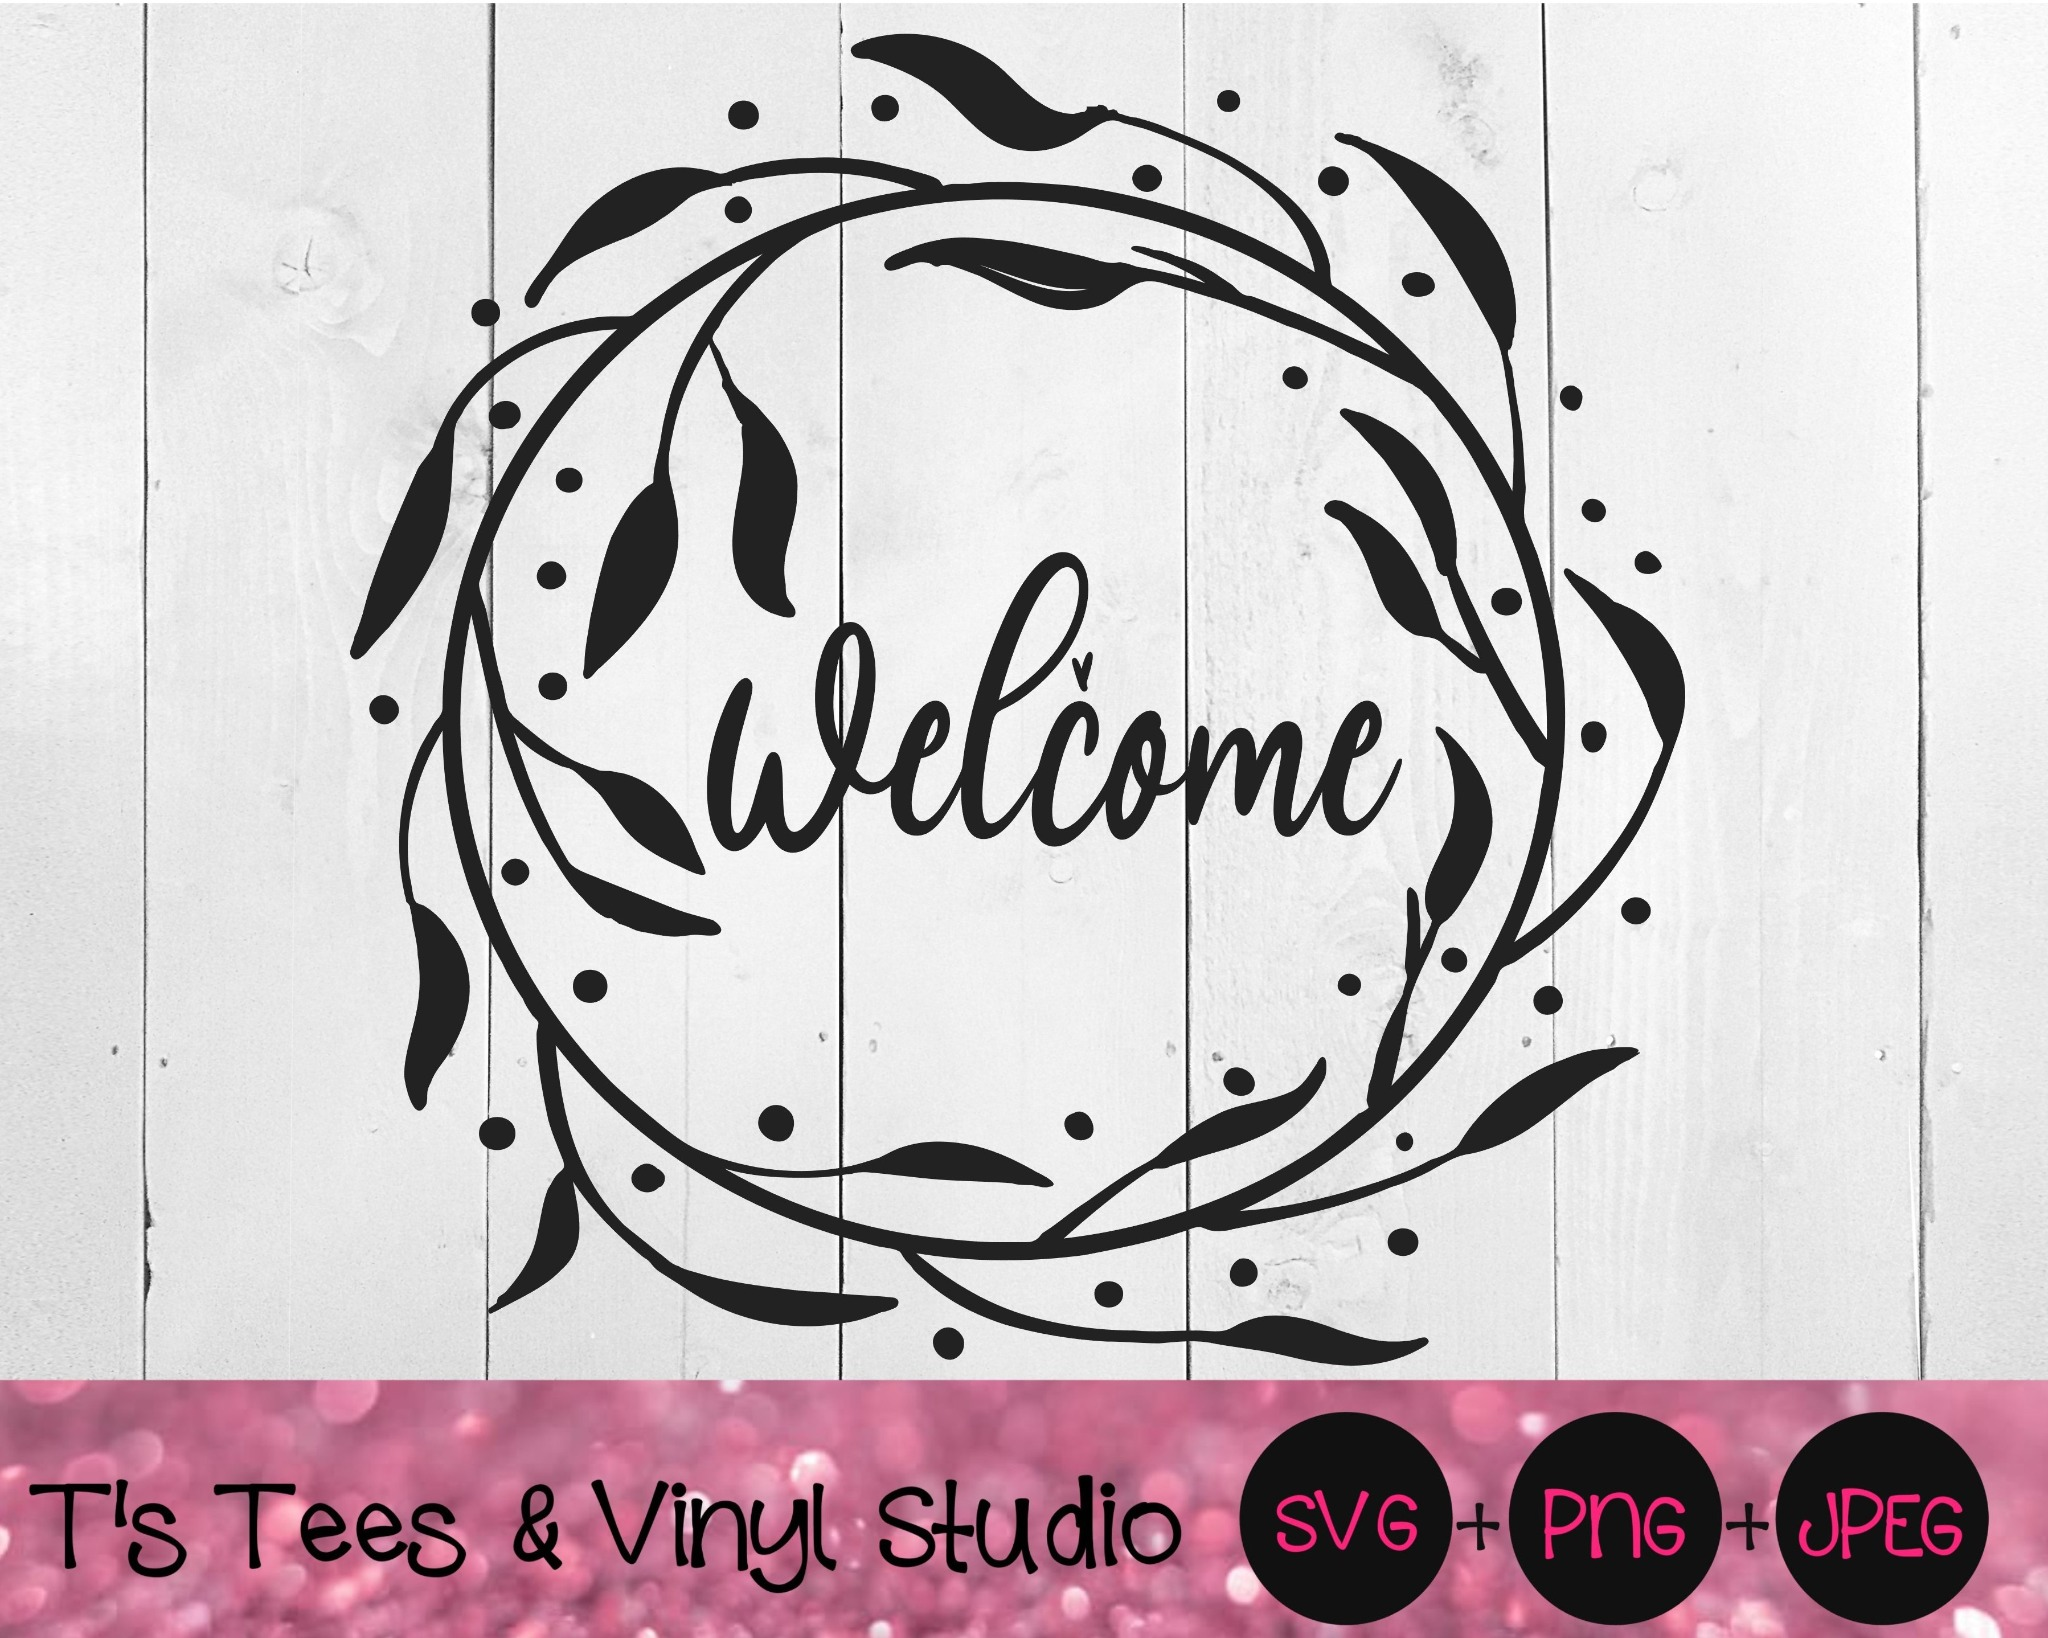 Welcome Wreath Wvg, Welcome Svg, Wreath Svg, Leaves Svg, Company Svg, Guests Svg, Sign Svg, Welcome